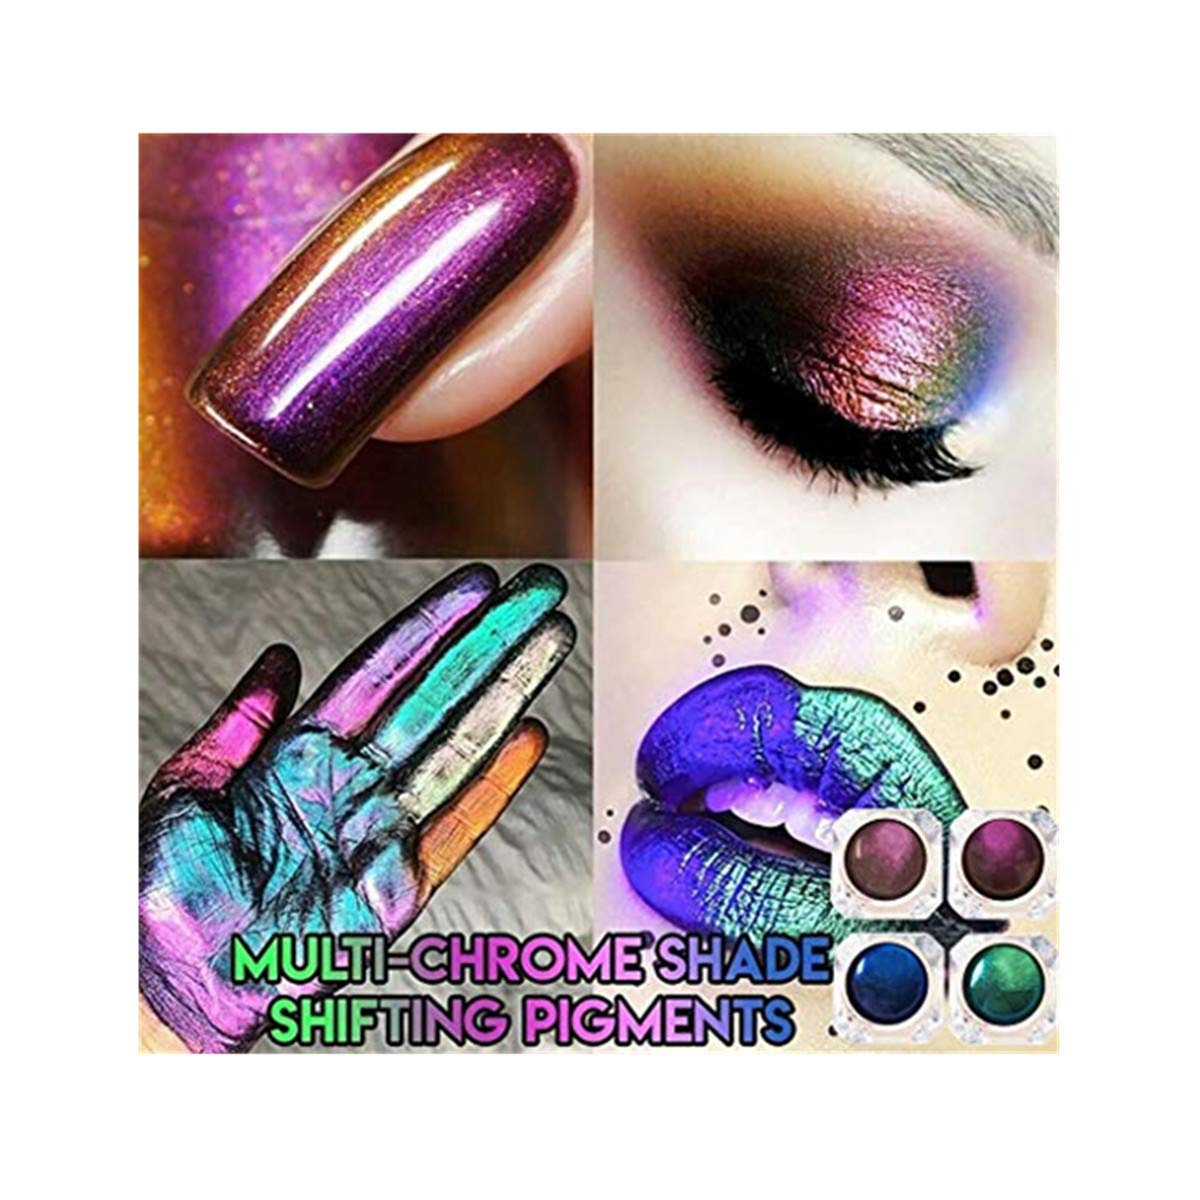 SUGEER Glitter Shadow Shadow Monochrome Eye Shadow Unique Glitter Eyeshadow Powder- Highly Pigmented - Waterproof & Long-Lasting - Vegan & Cruelty Free